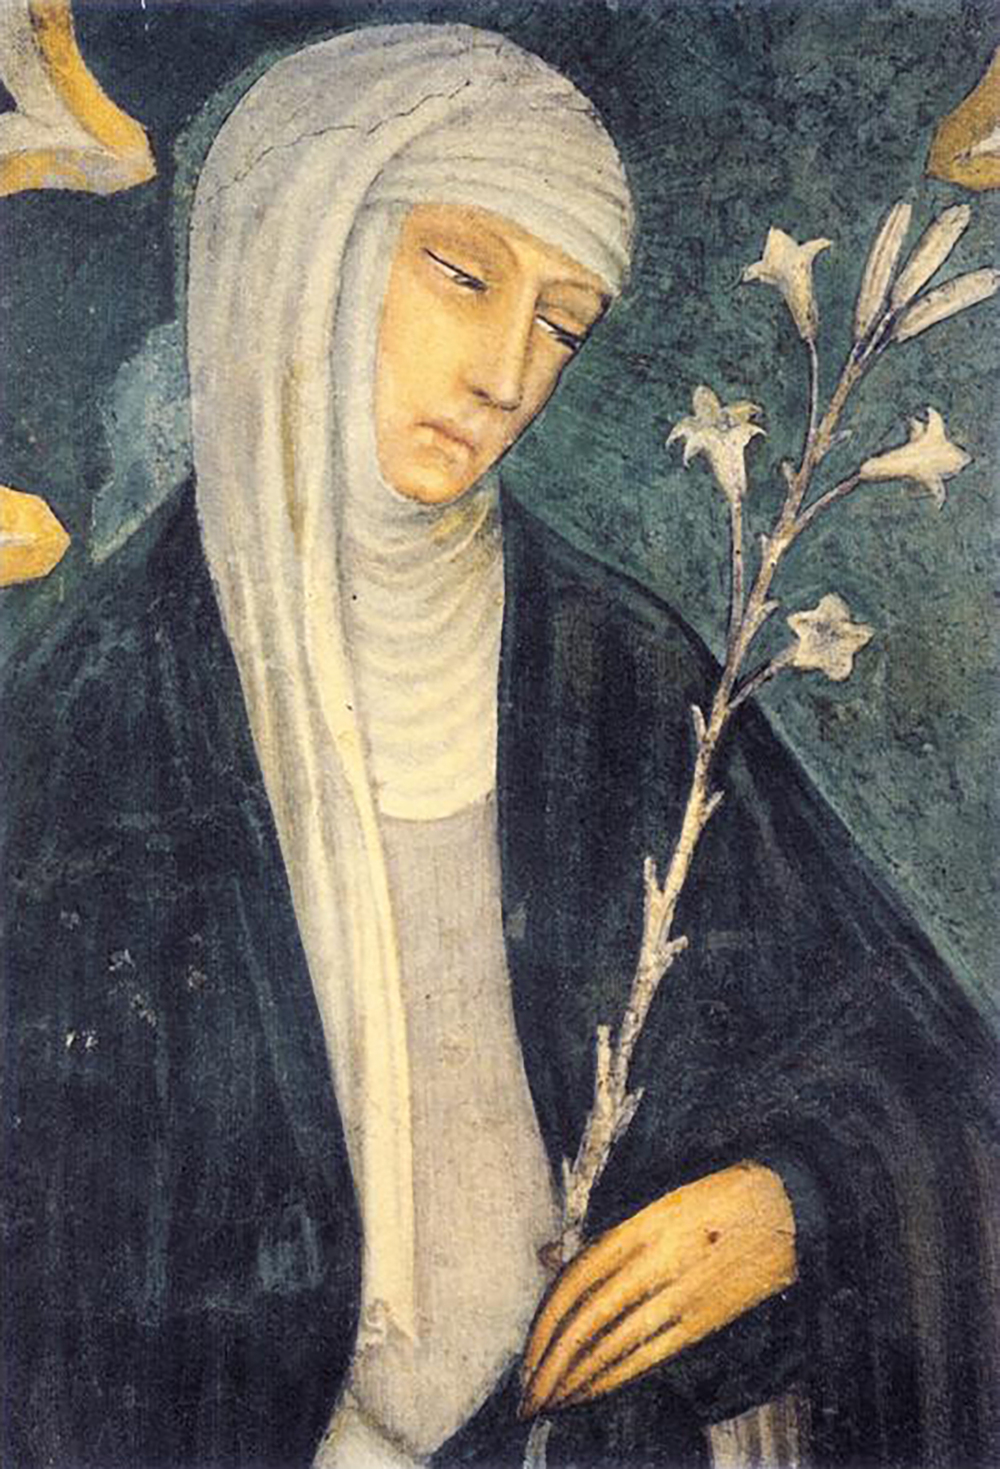 St. Catherine of Siena, pray for us.